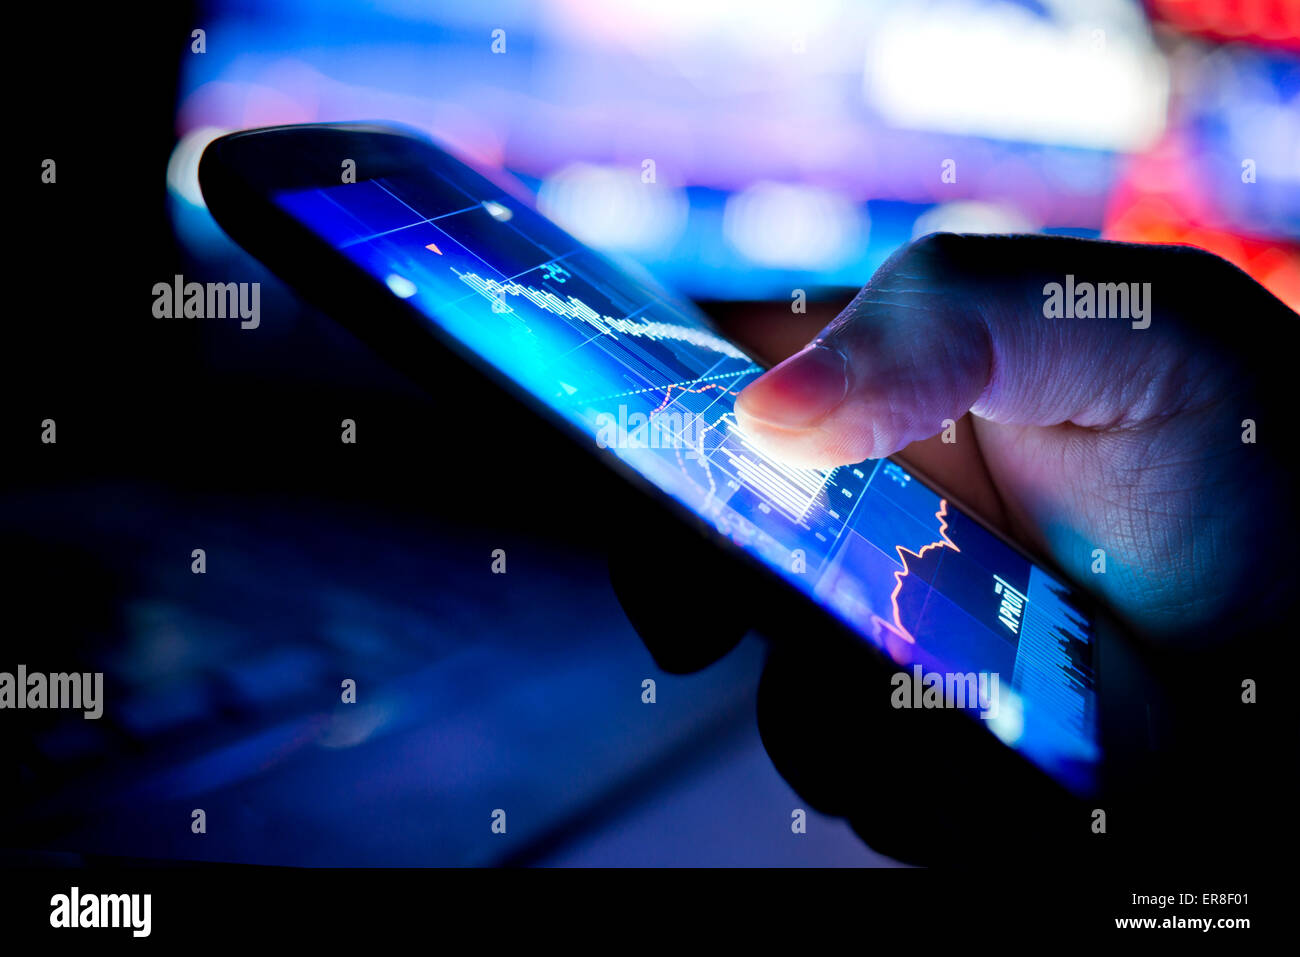 A city businessman using a mobile device to check stocks and market data. Close up shot. - Stock Image